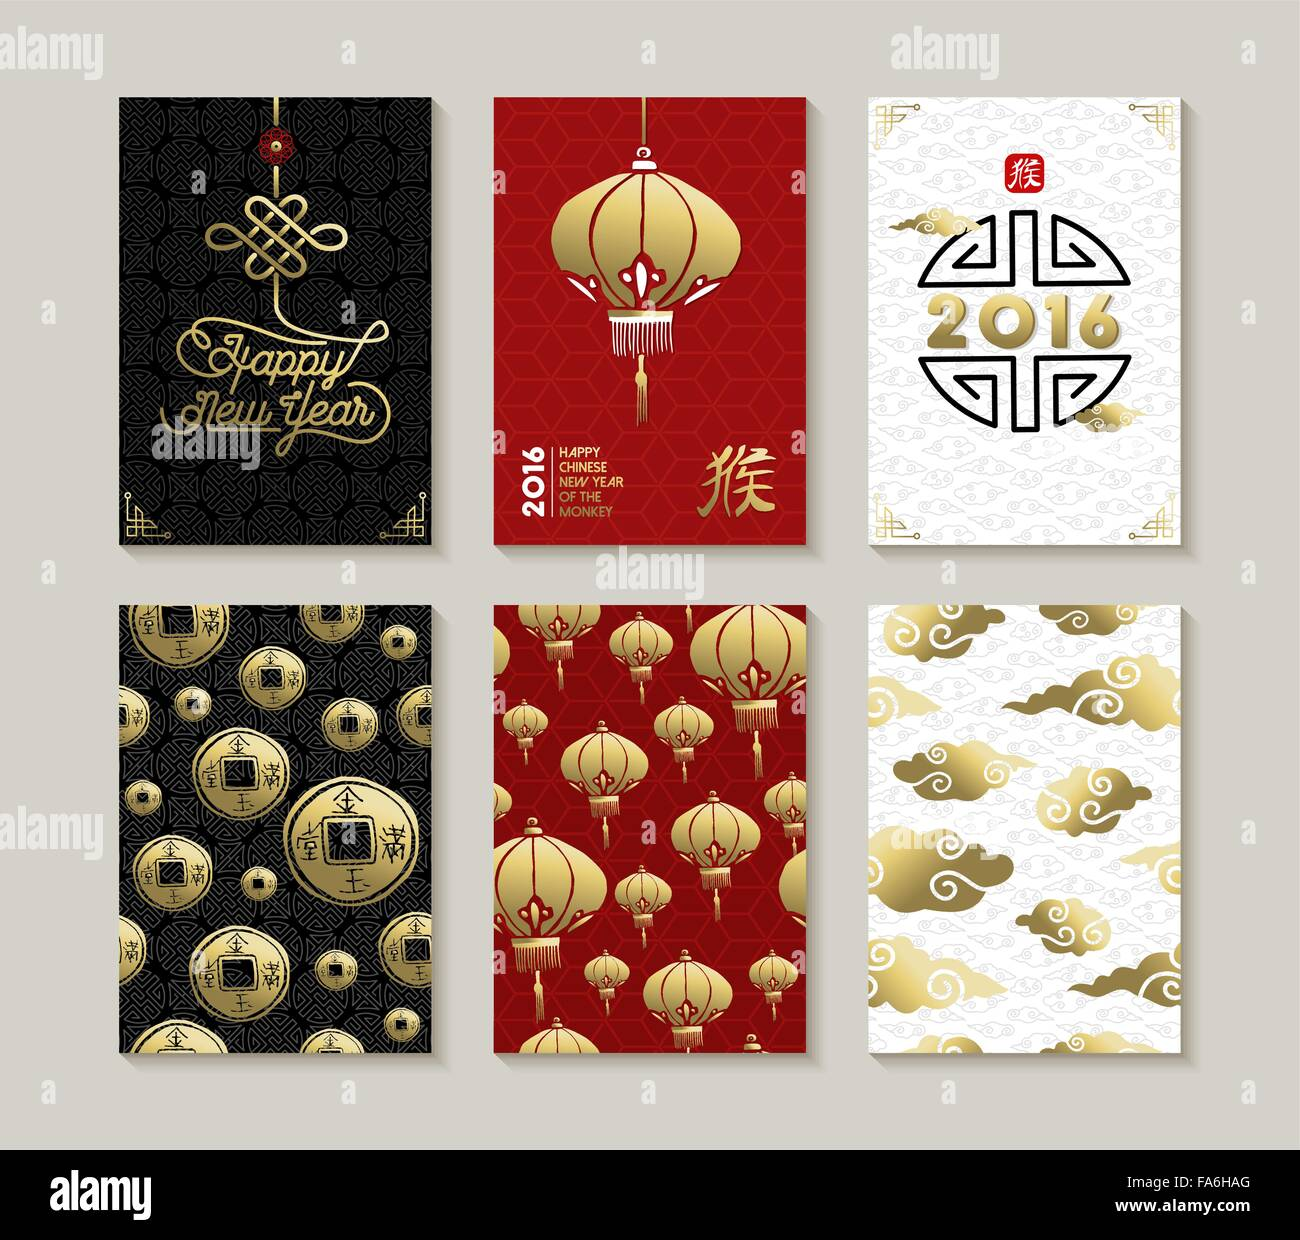 2016 Happy Chinese New Year Of The Monkey Greeting Card Seamless